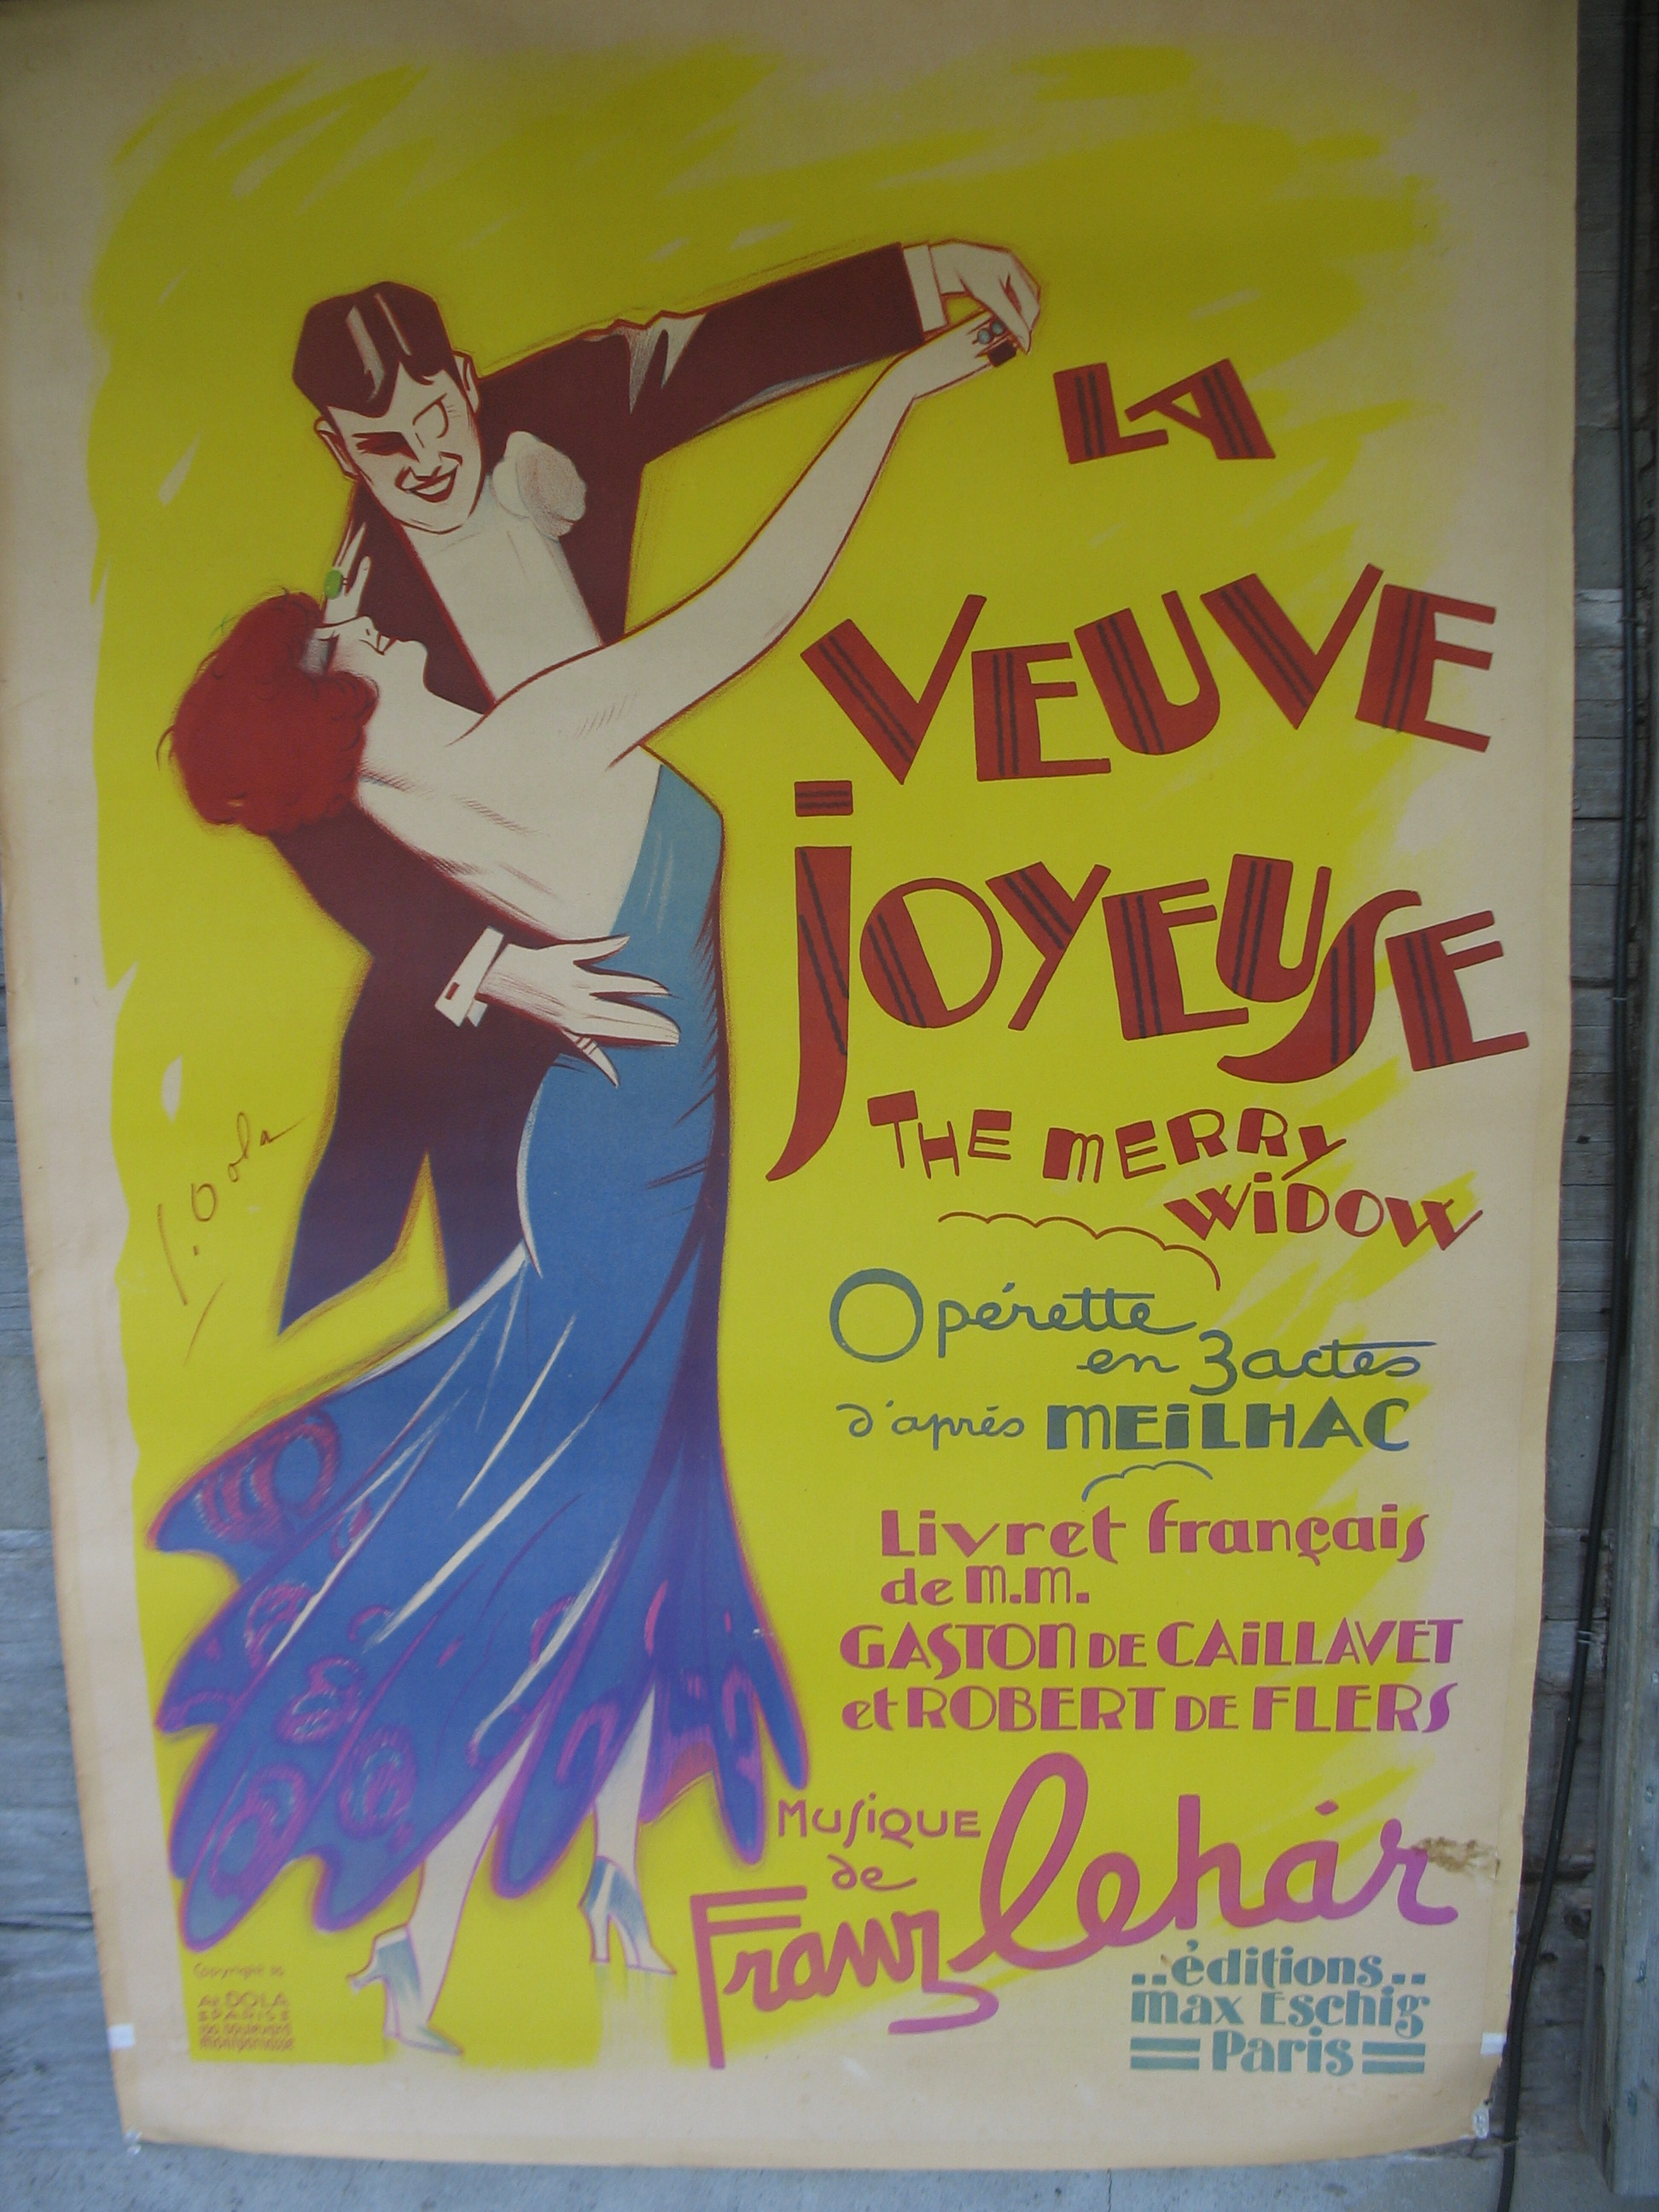 """Poster of """"The Merry Widow"""" the wonderful operetta by Franz Lehar. The colors are very vivid yellows, blues, and reds. It is a signed Dola who was a very popular poster artist in 1936 in France."""